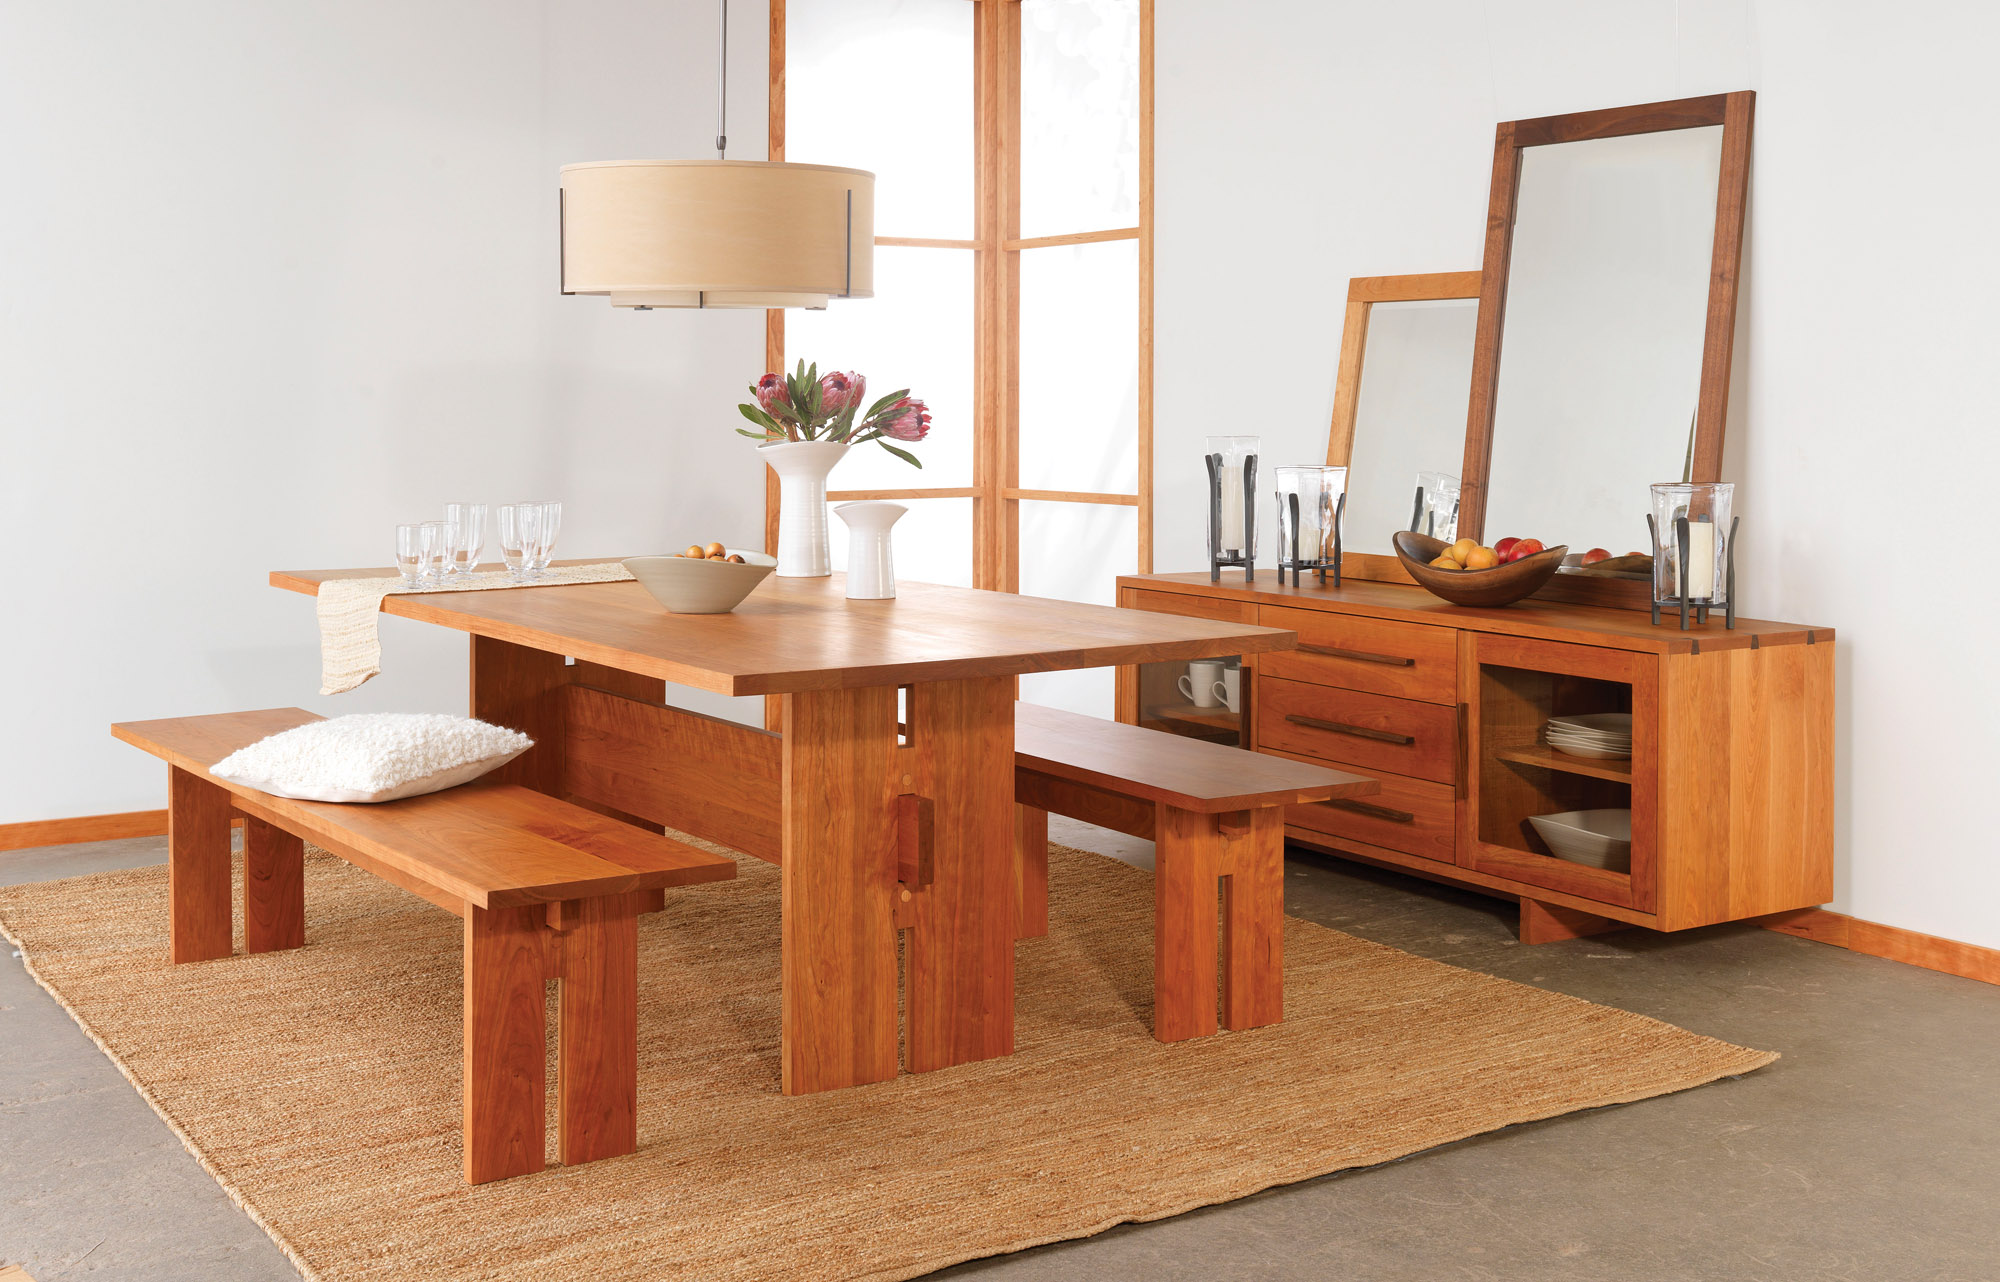 The Modern American Dining Set by Vermont Wood Studios